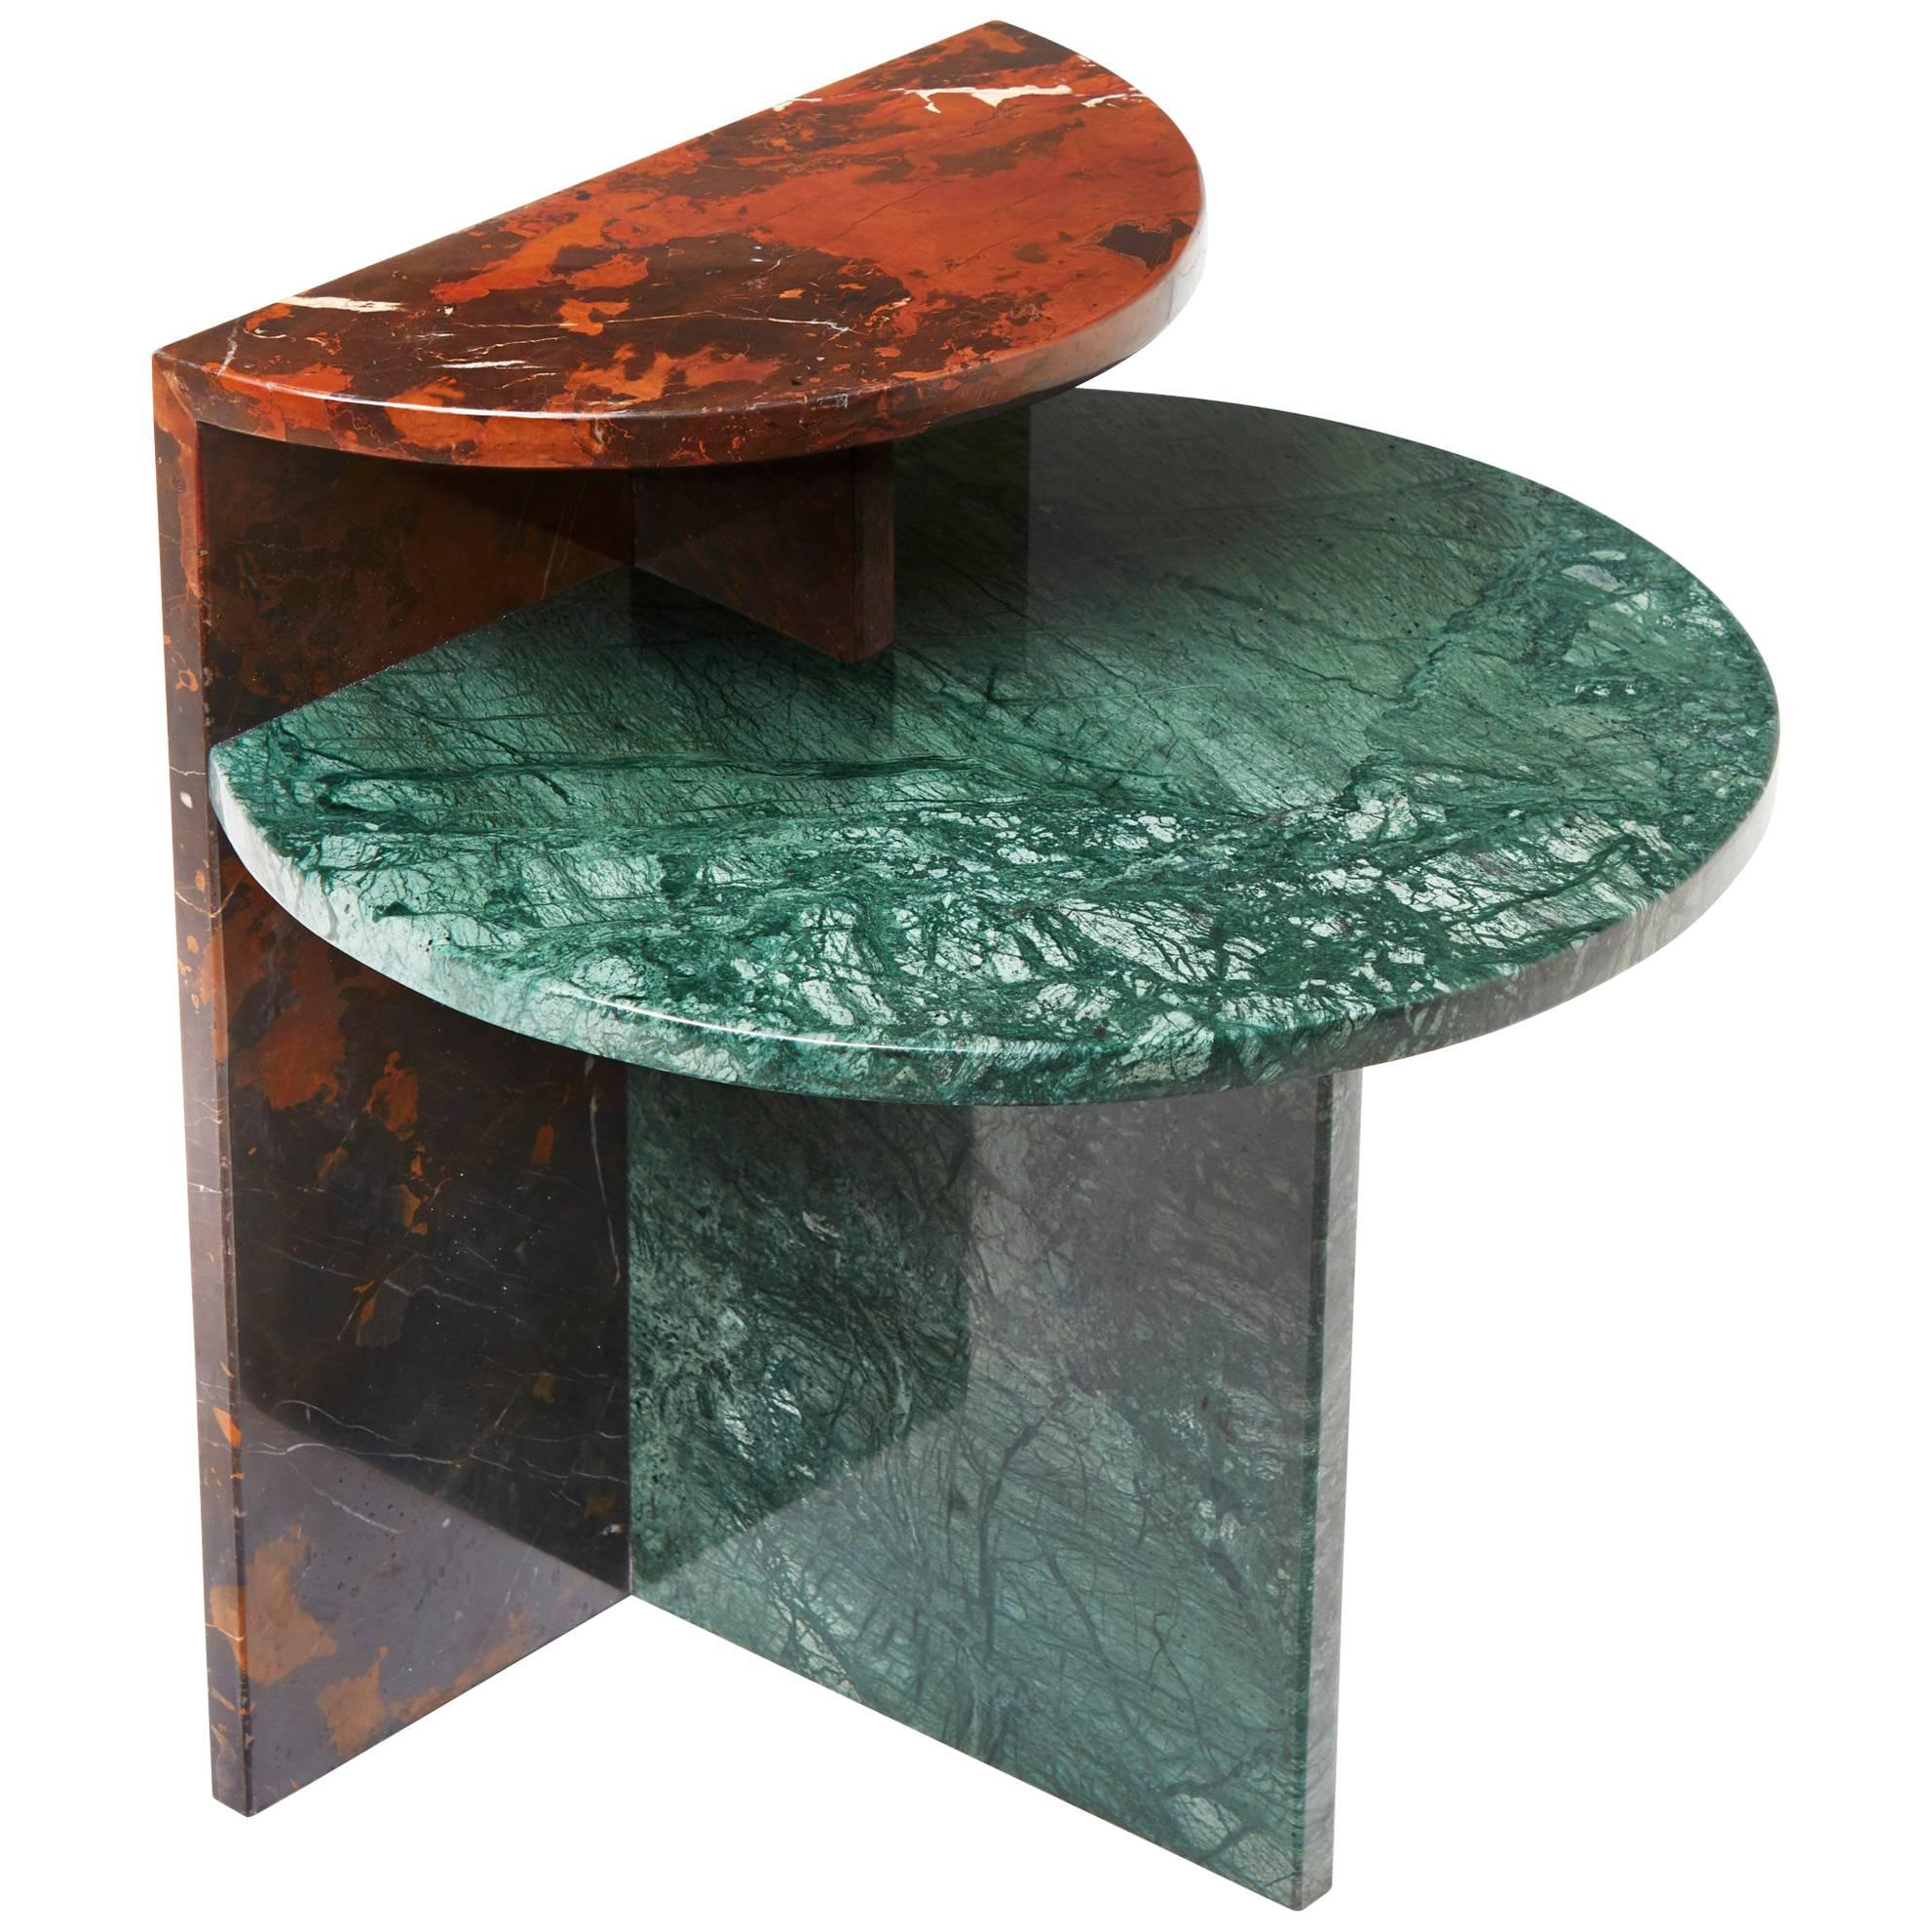 Contemporary Café Side Table in Marble, Handcrafted in Brazil